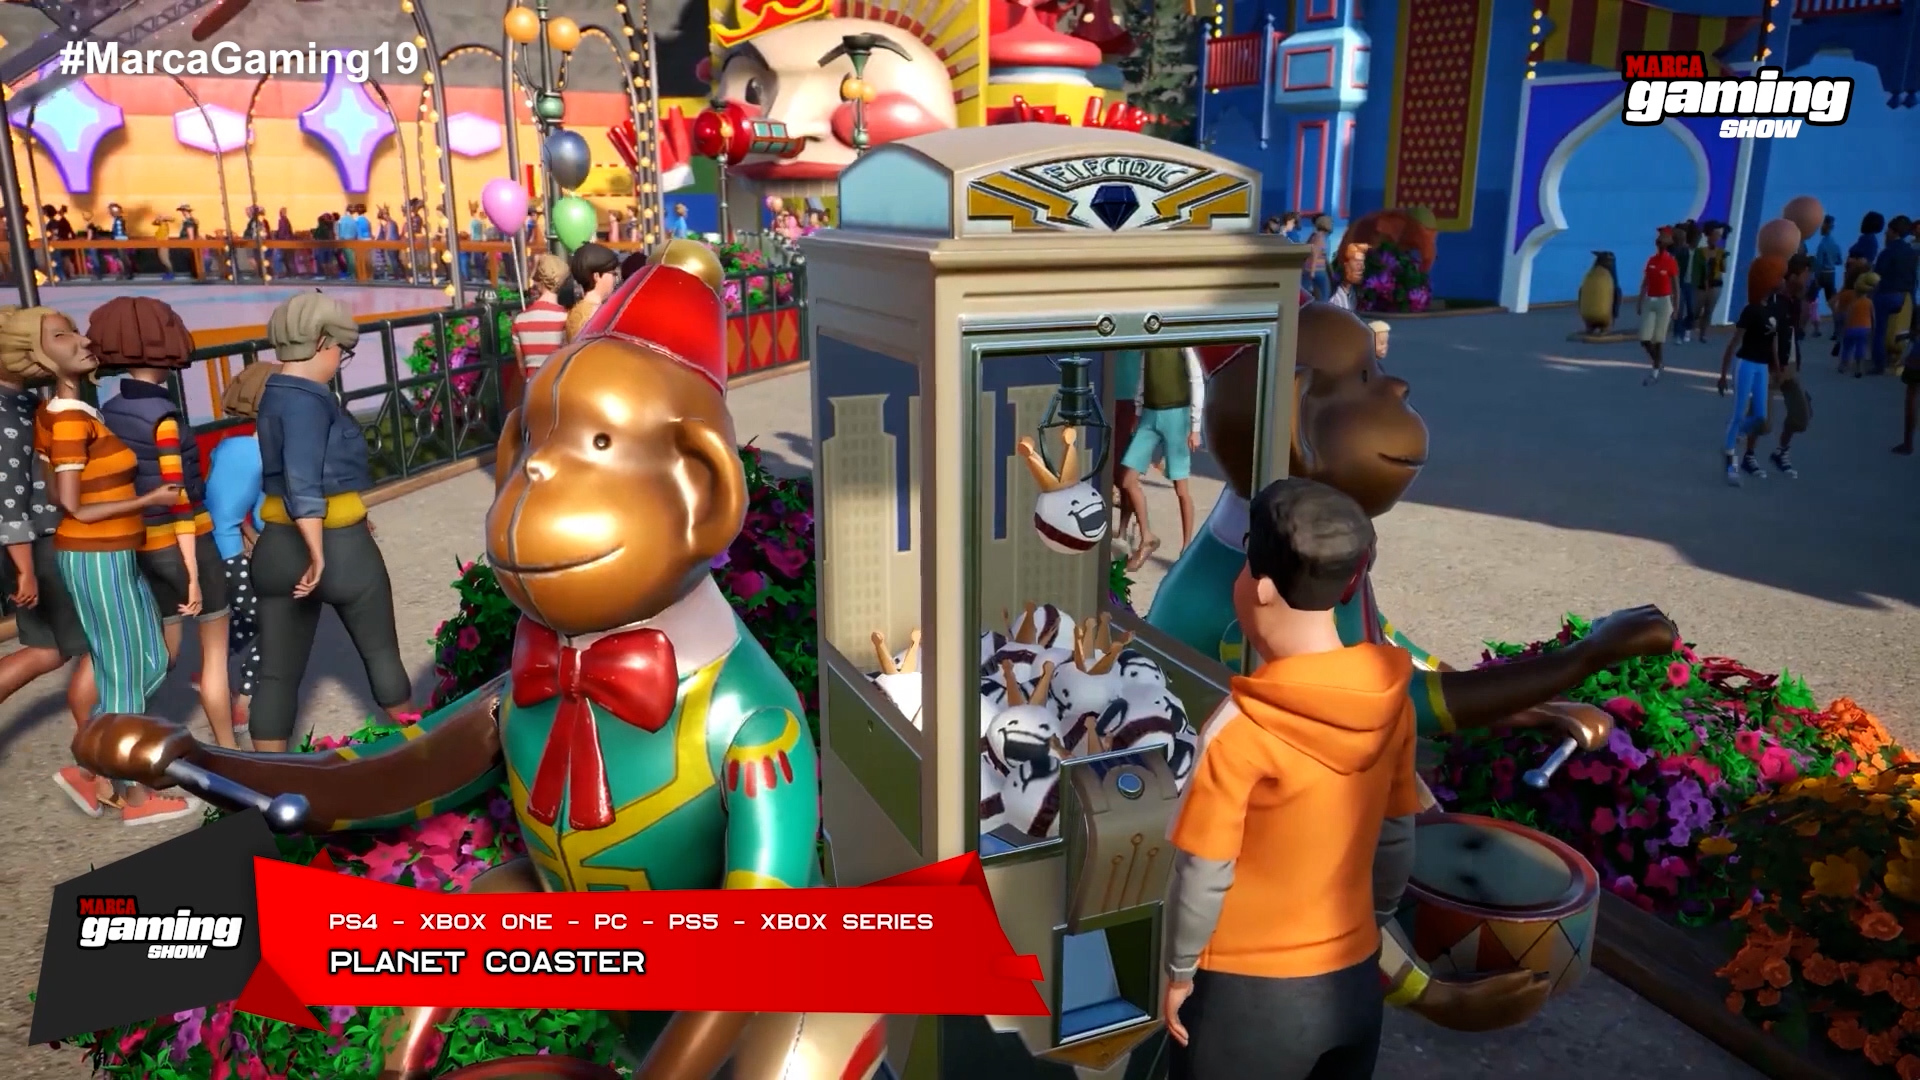 Planet Coaster (PC - PS4 - PS5 - XBOX ONE - XBOX SERIES)